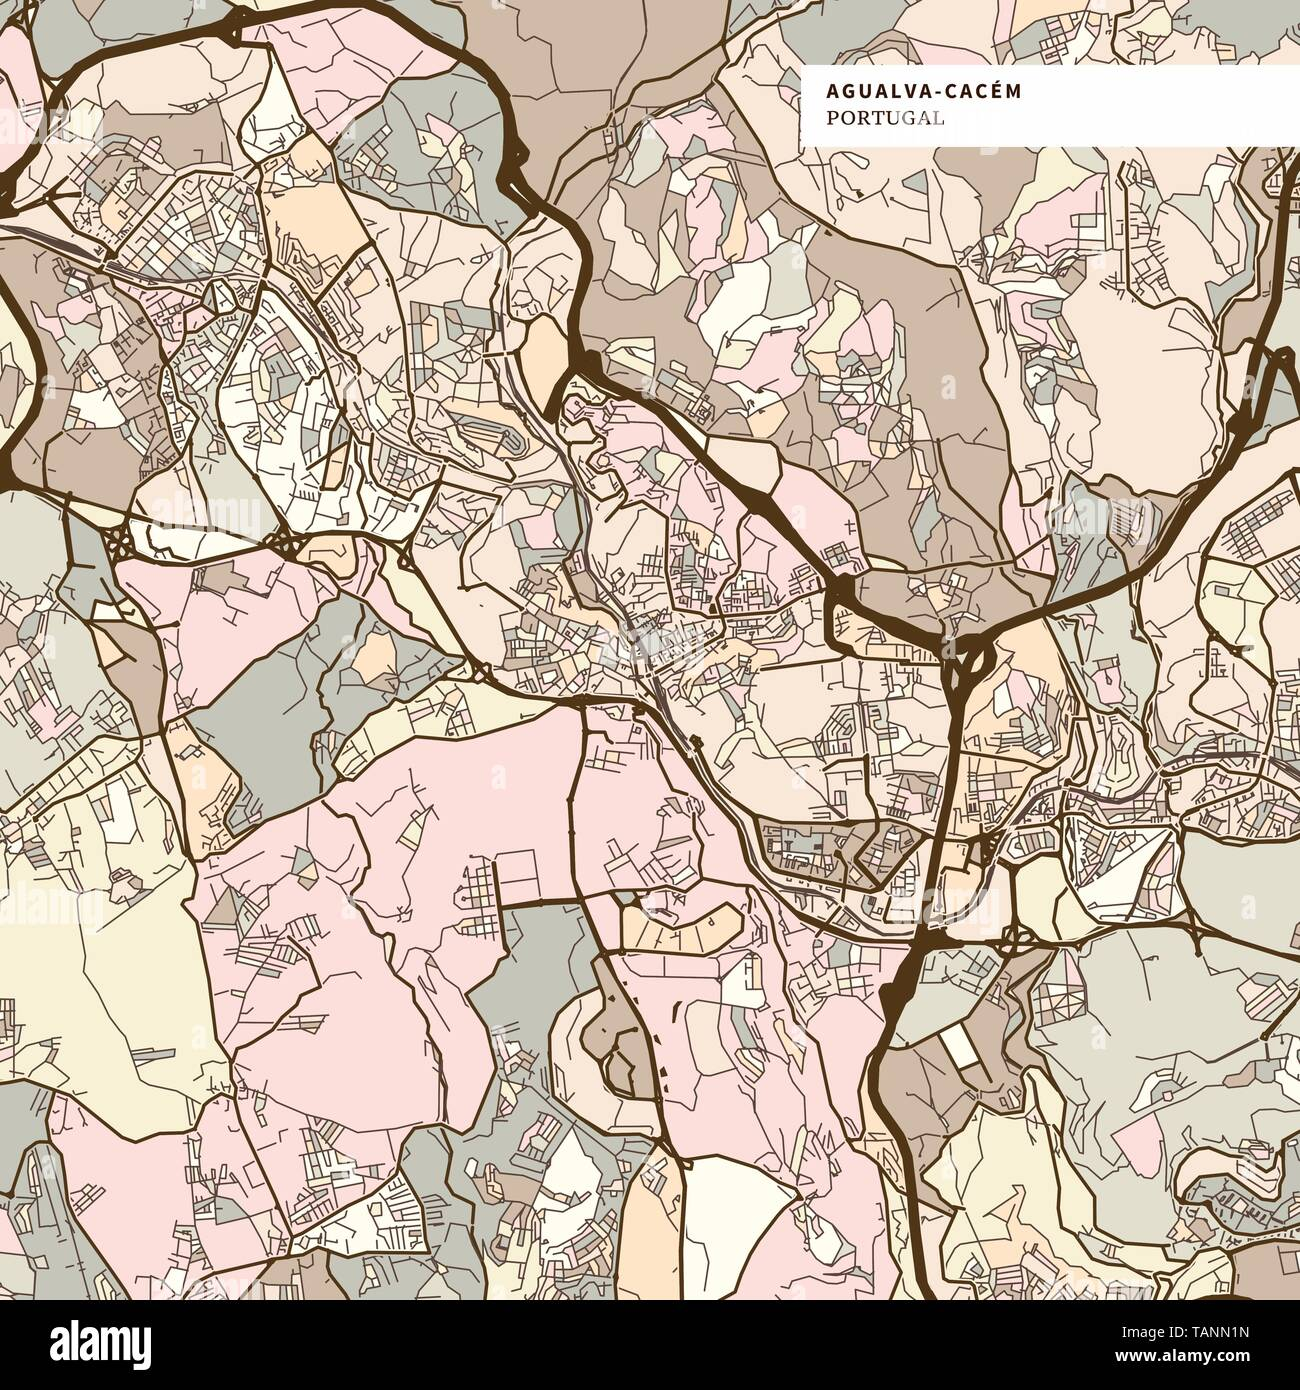 Map Of Agualva Cacem Brown Colored Version For Apps Print Or Web